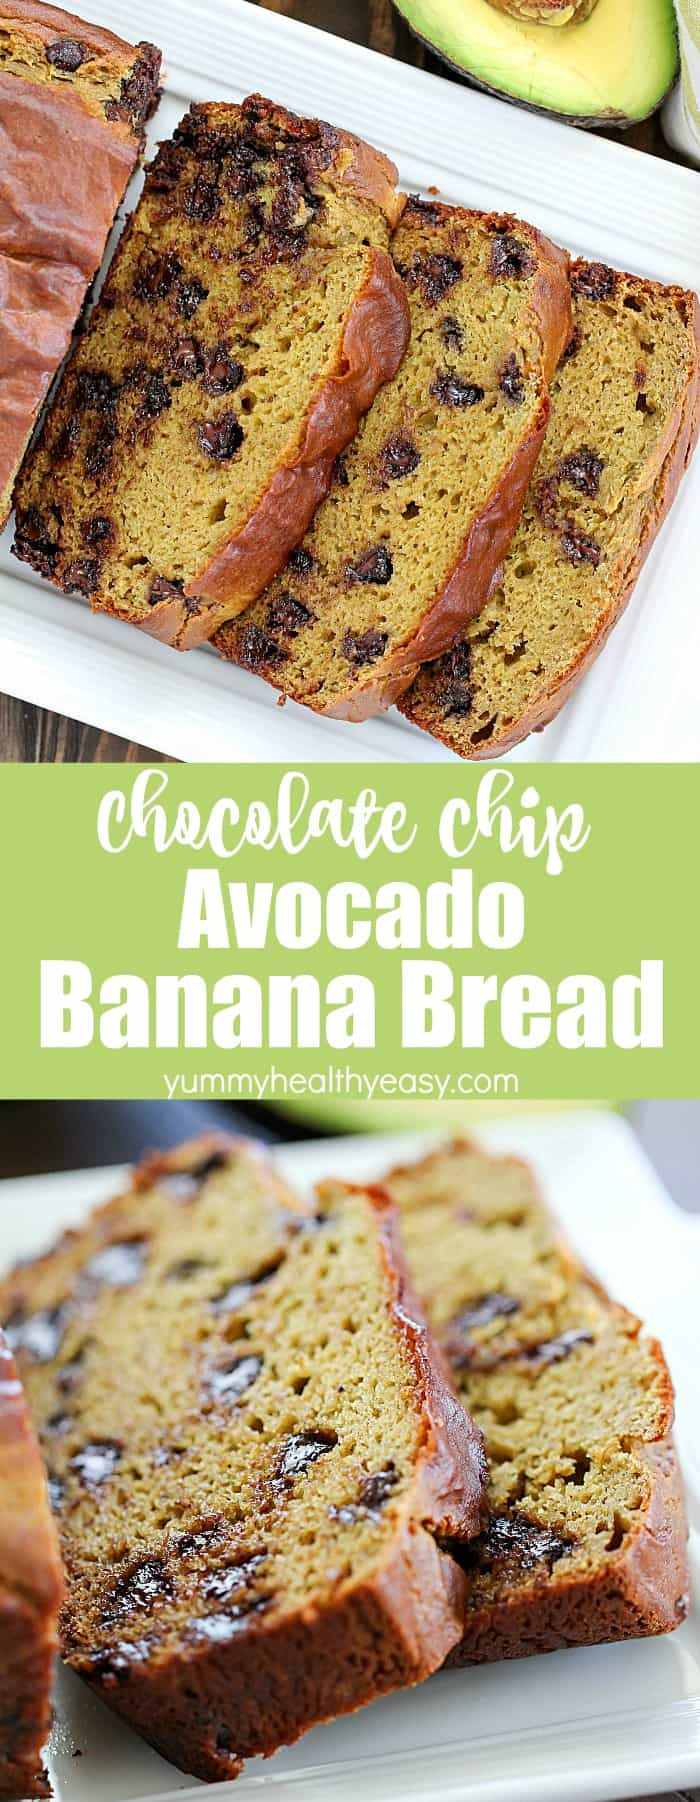 This Chocolate Chip Avocado Bread Recipe has NO oil or butter, thanks to the addition of avocado! Plus it makes this banana bread so soft and I promise you can't taste the avocado at all! A must-make recipe! #avocado #banana #bread #bananabread #quickbread #easy #yummy #delicious #recipe #dessert #snack #chocolate #chocolatechips